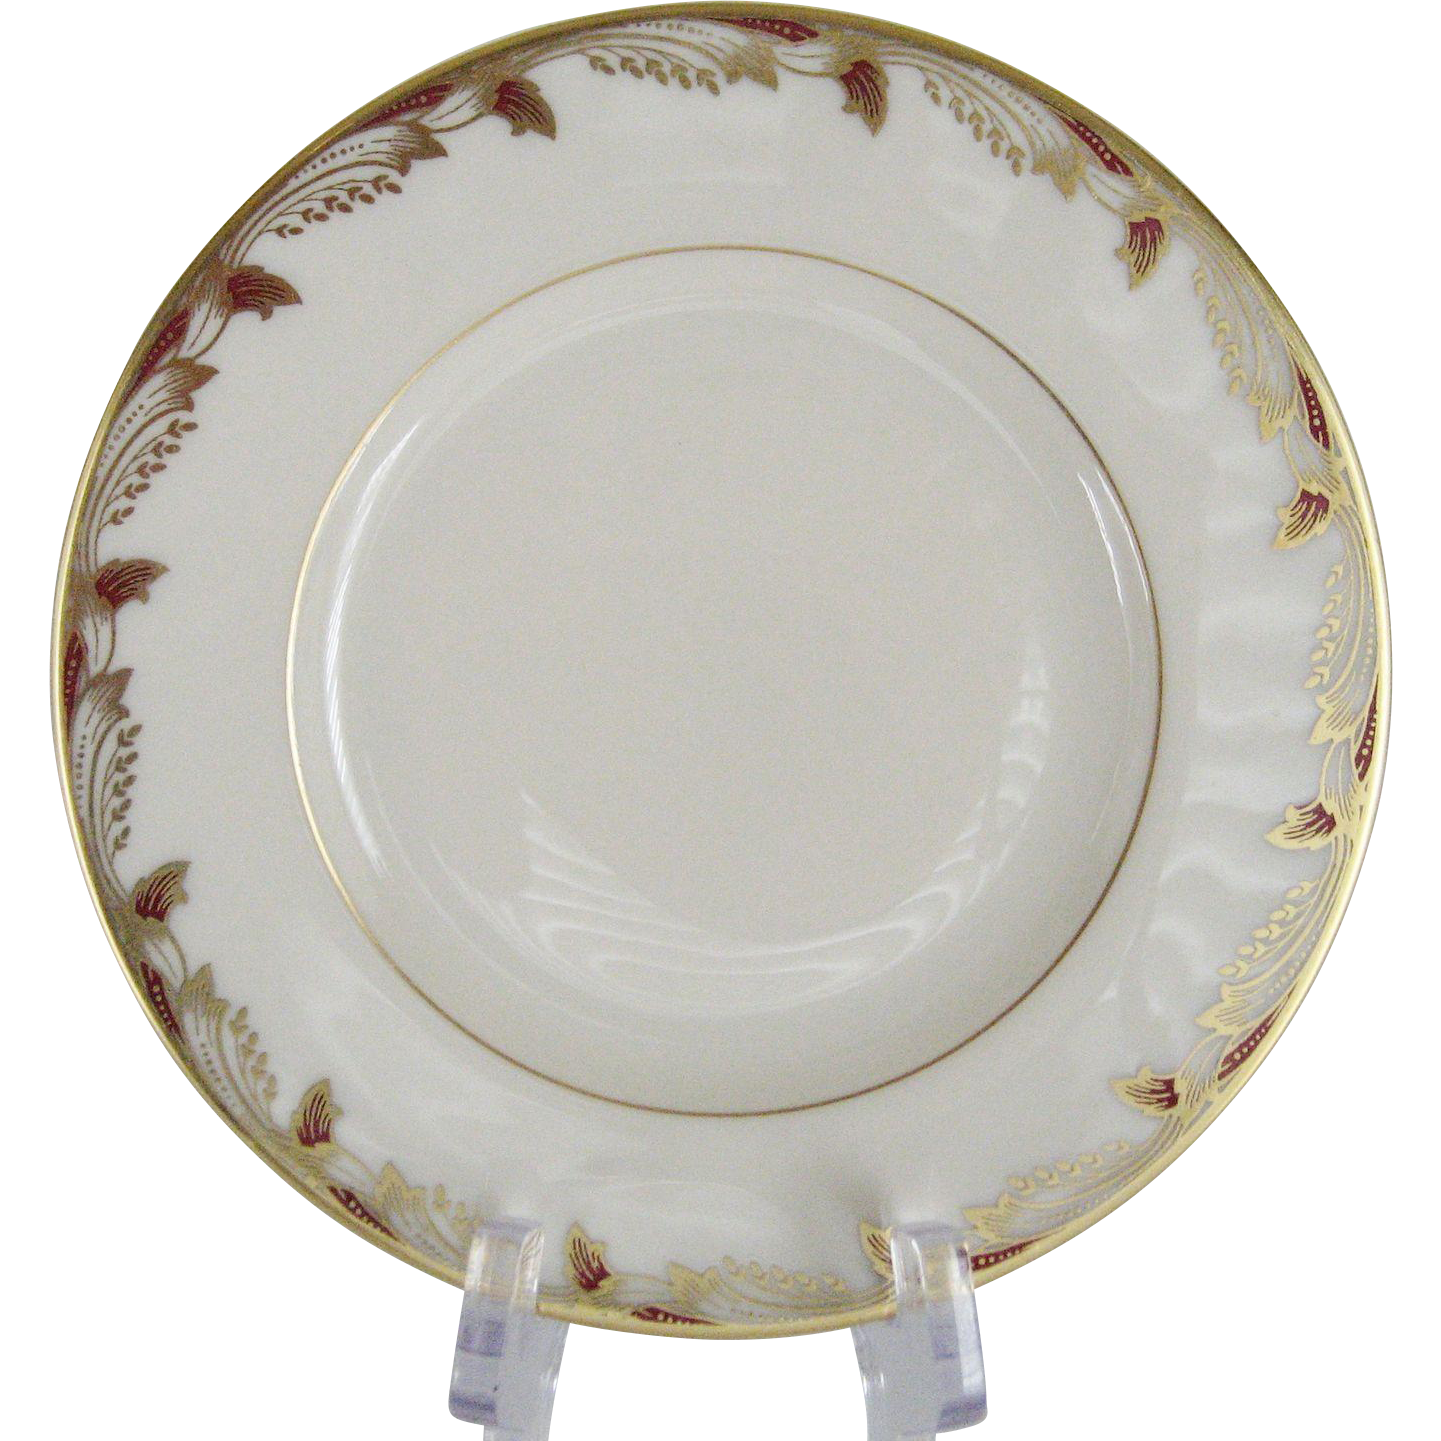 Lenox Essex Maroon Smooth Bread and Butter Plates - 12 Available